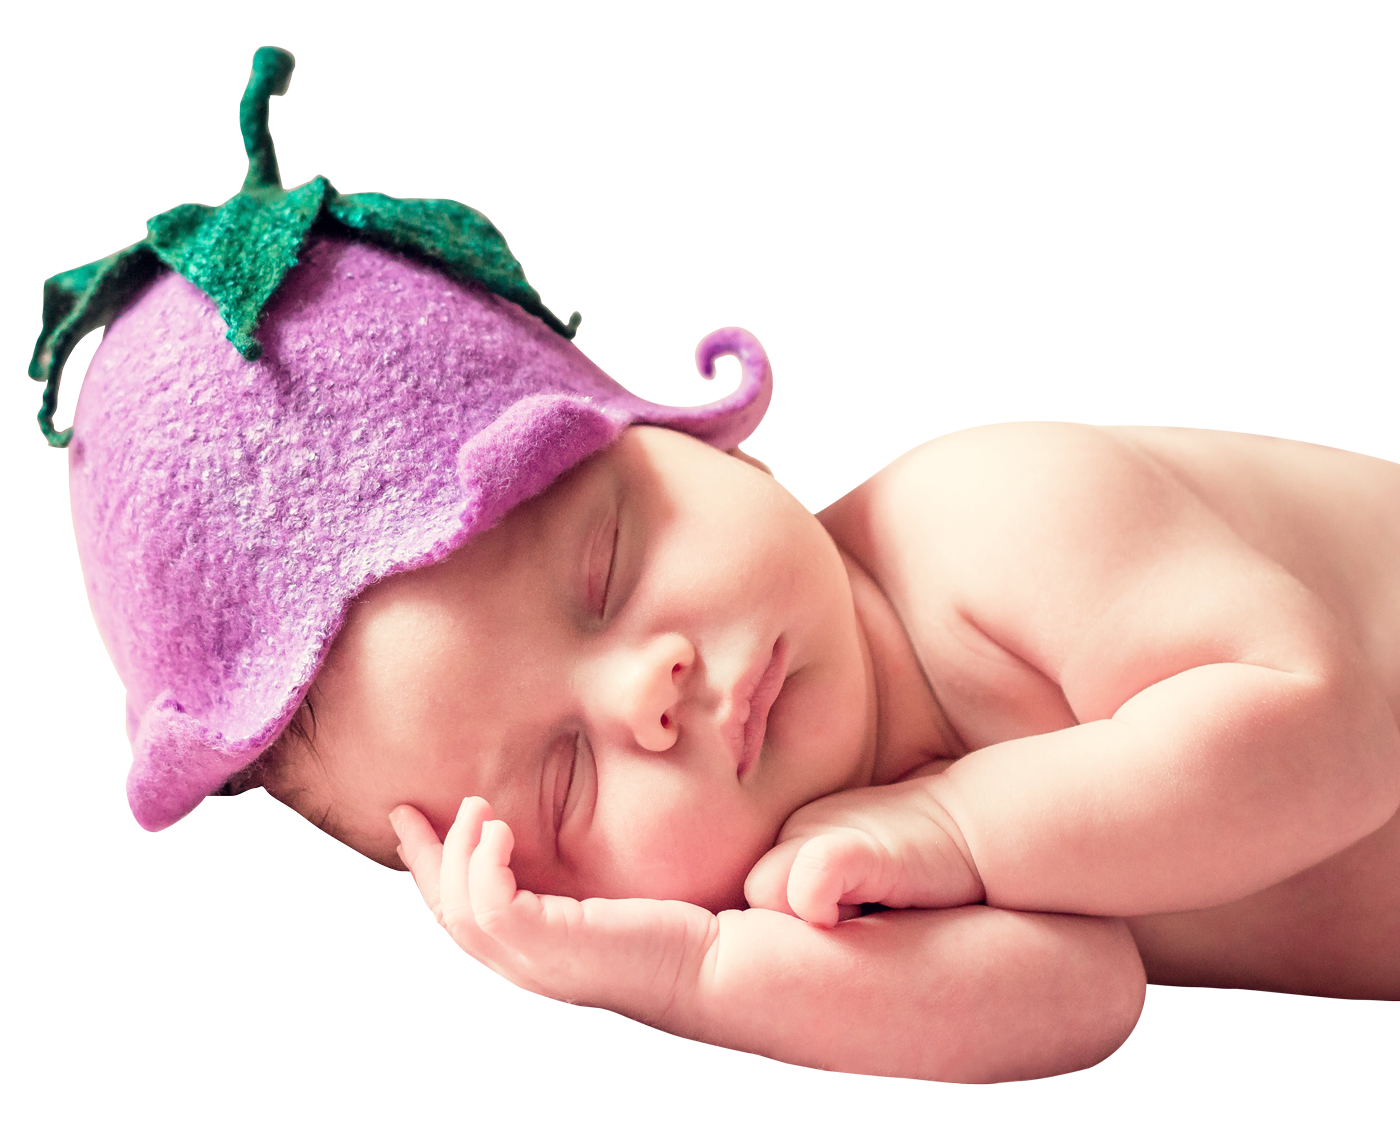 Baby PNG Transparent Images.